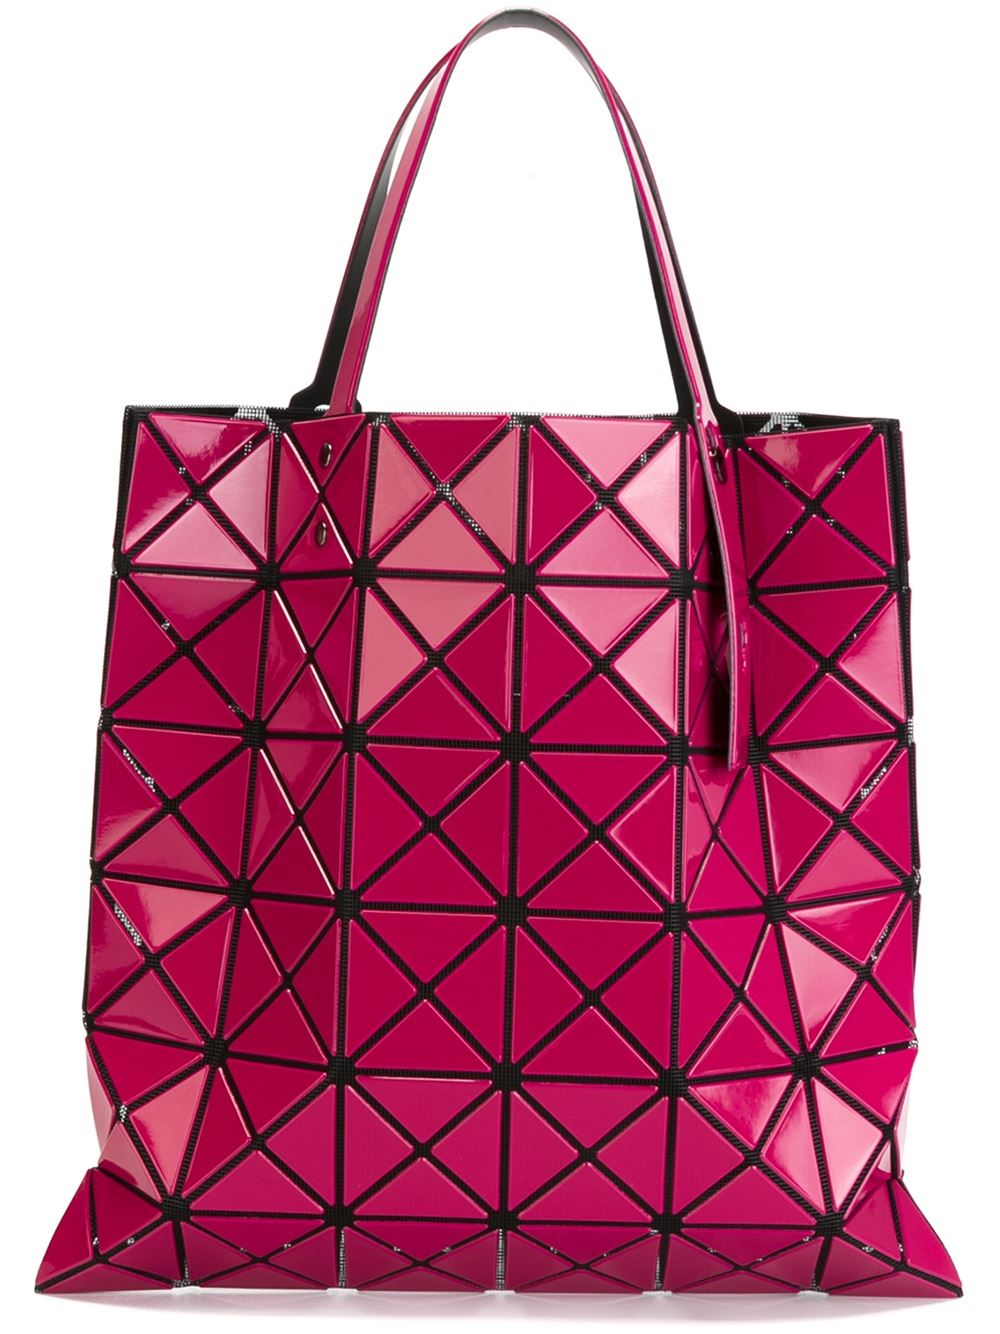 lyst bao bao issey miyake 39 lucent 2 39 tote in pink. Black Bedroom Furniture Sets. Home Design Ideas